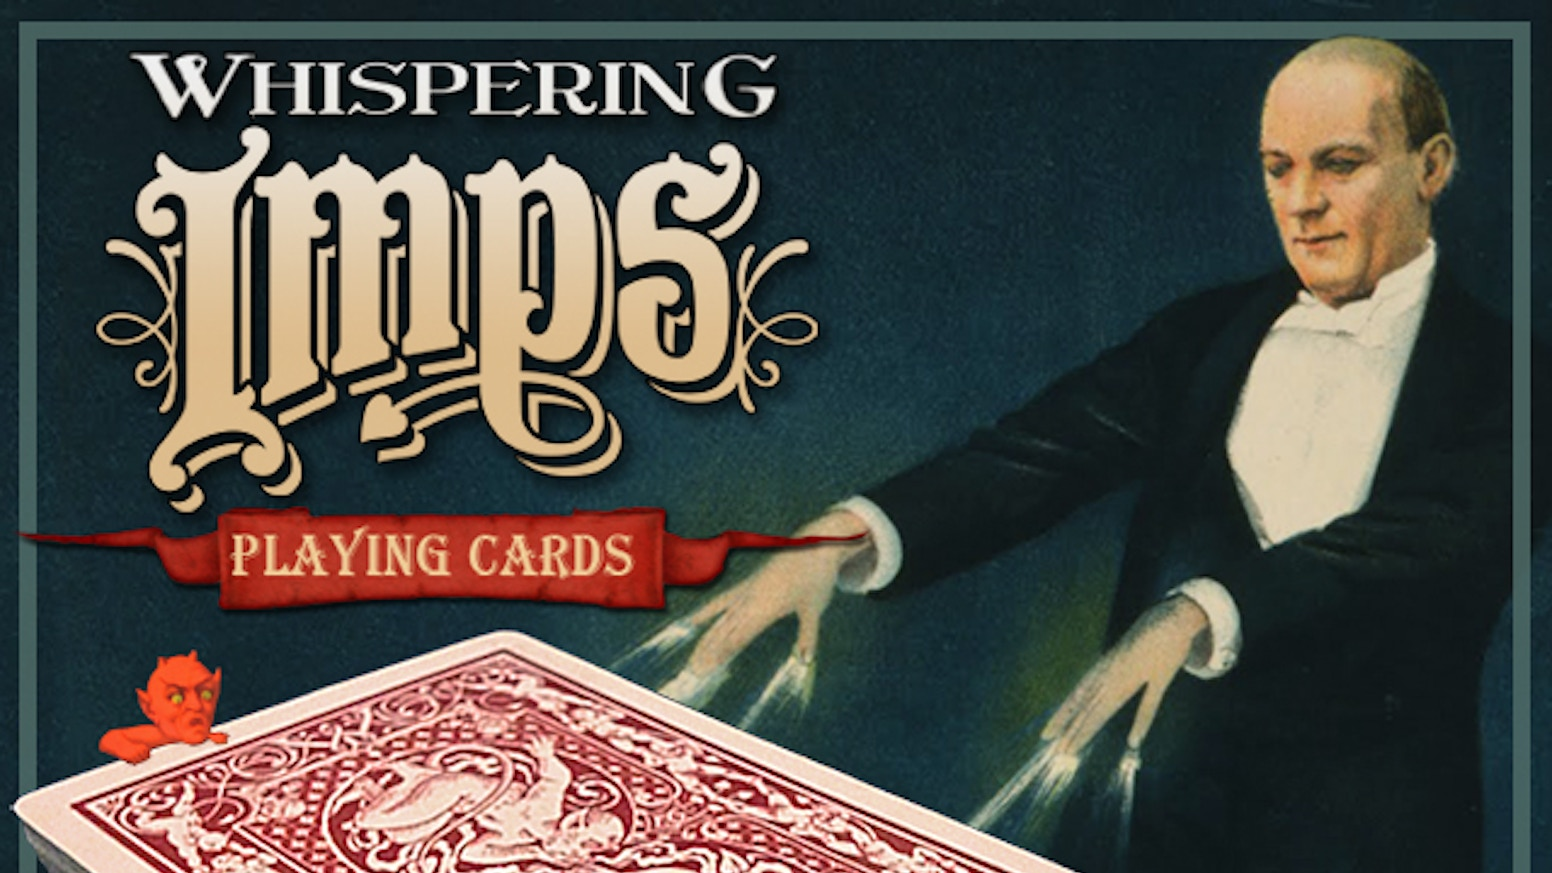 A deck of playing cards inspired by Harry Kellar's famous Whispering Imps, hand drawn by illustrator Mark Stutzman, printed by USPCC.